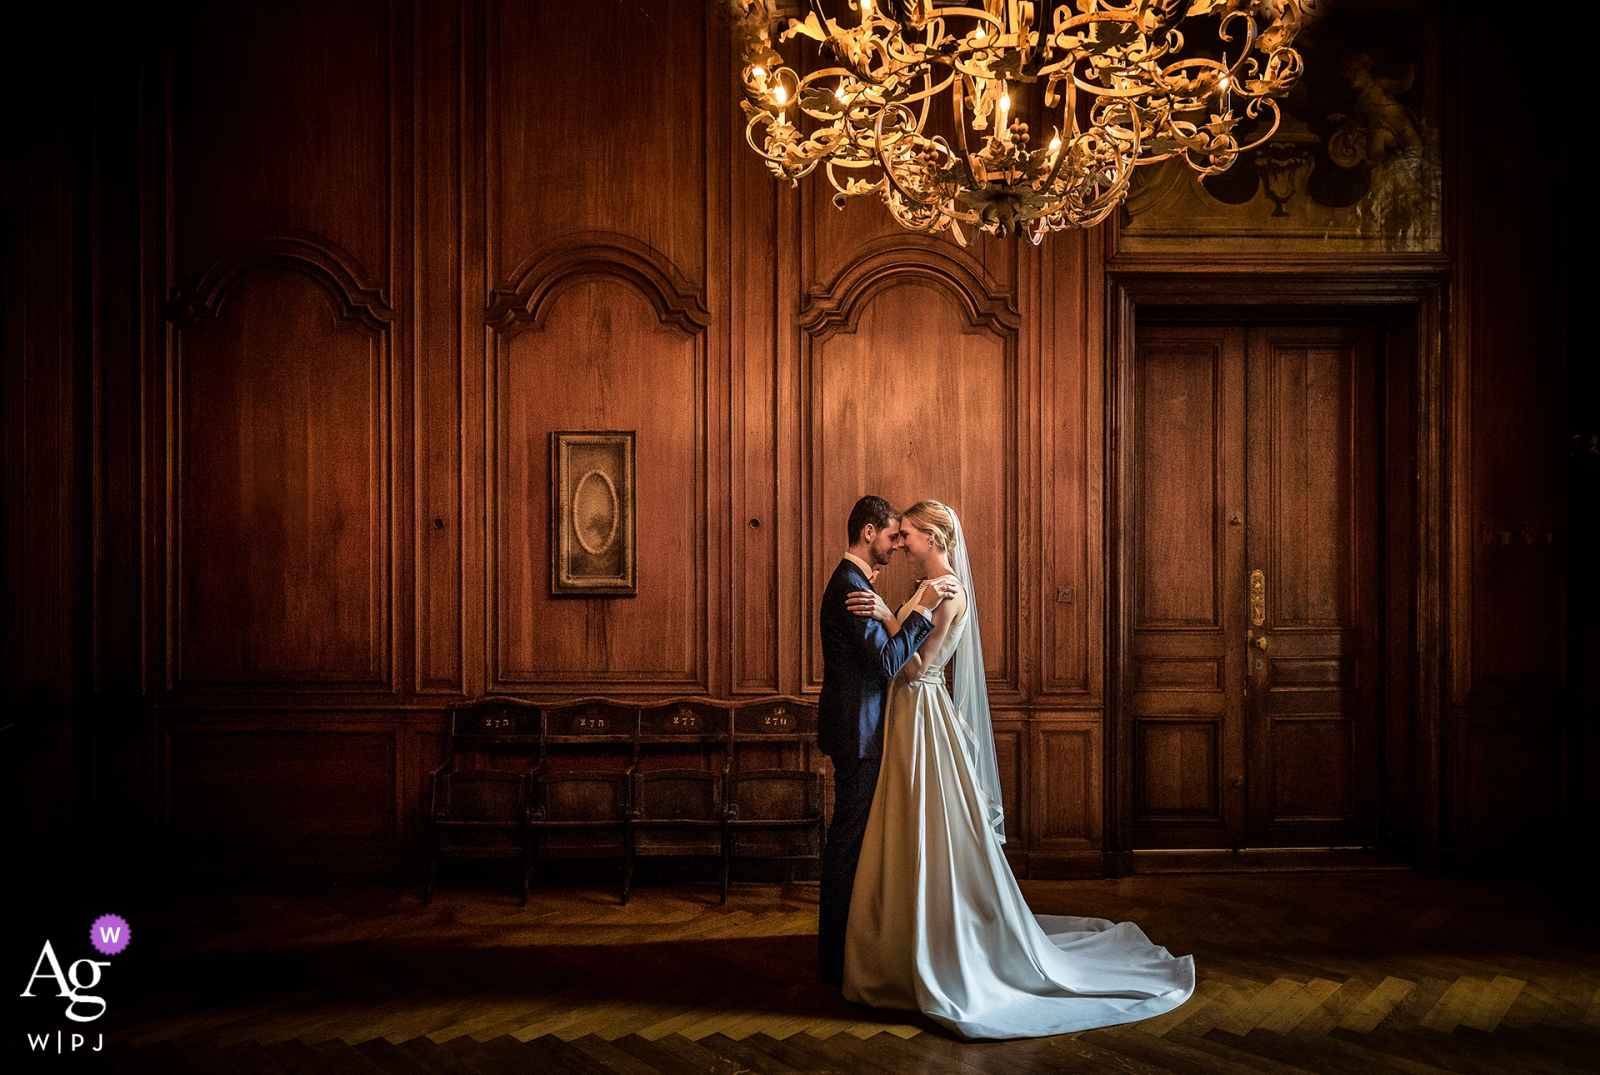 The Hague Netherlands, old castle wedding portraits   in this old room its just you and me